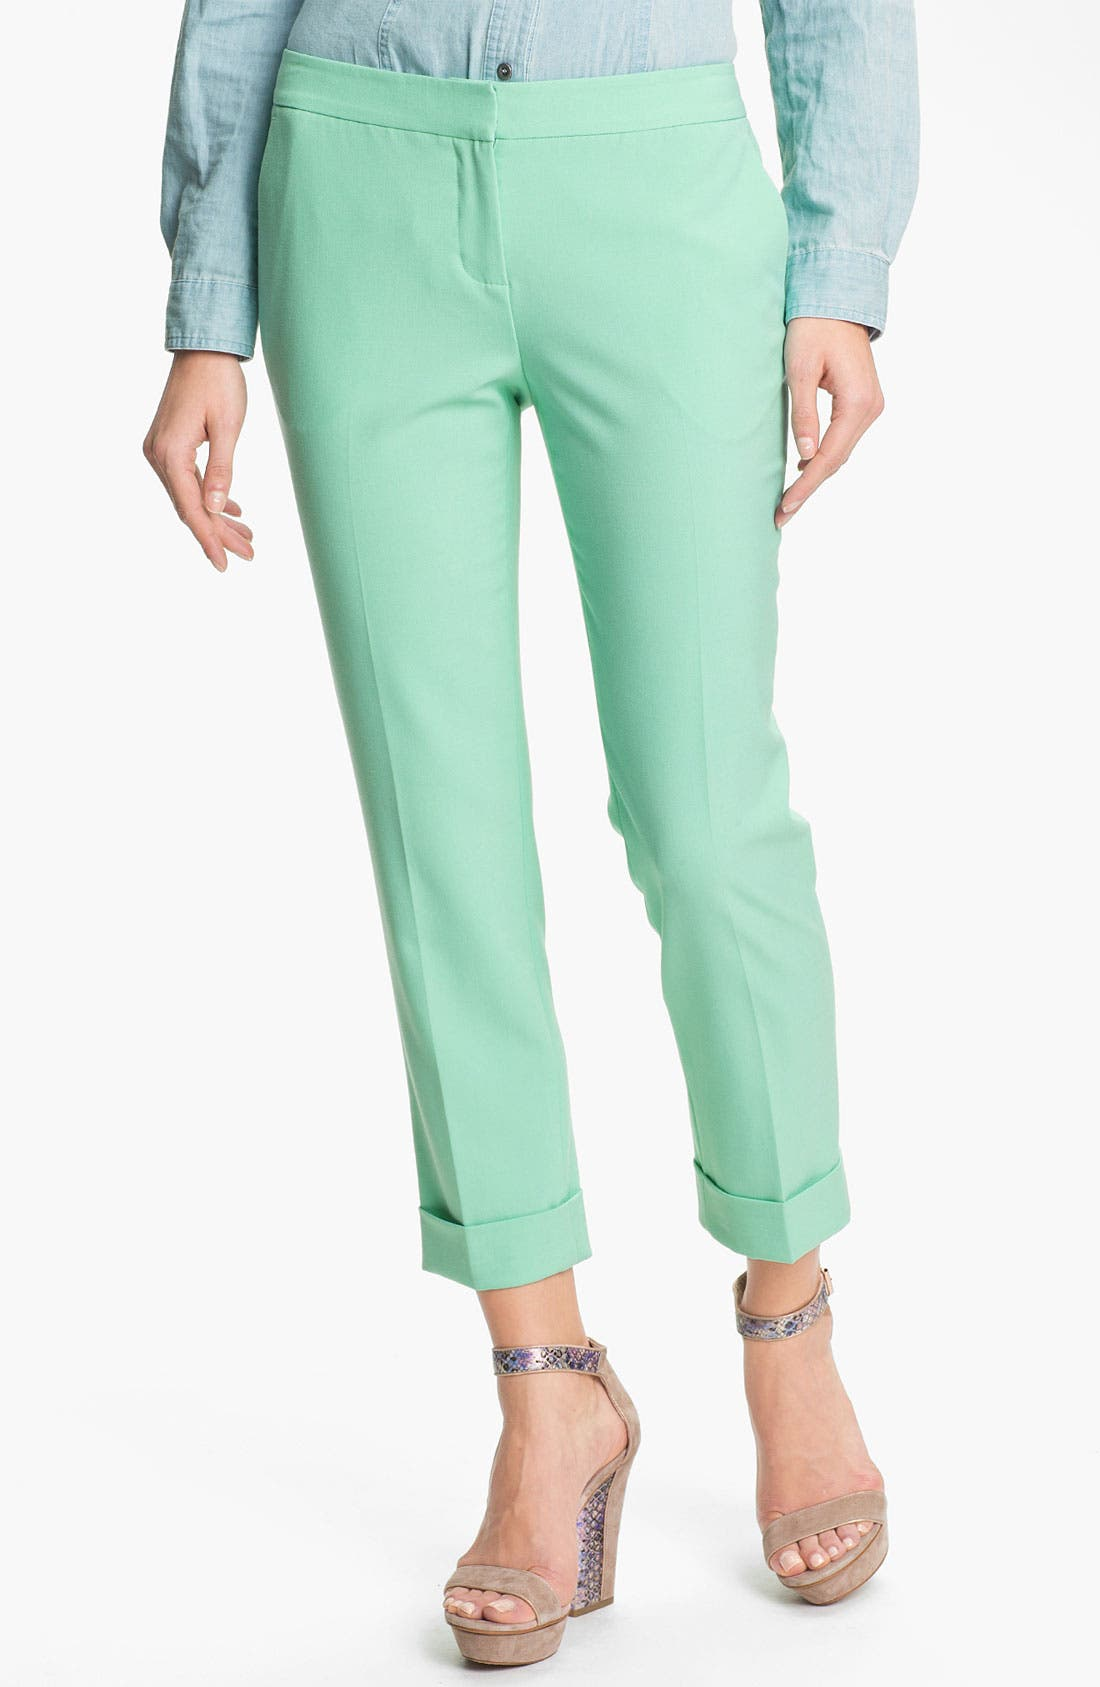 Alternate Image 1 Selected - Vince Camuto Cuff Ankle Pants